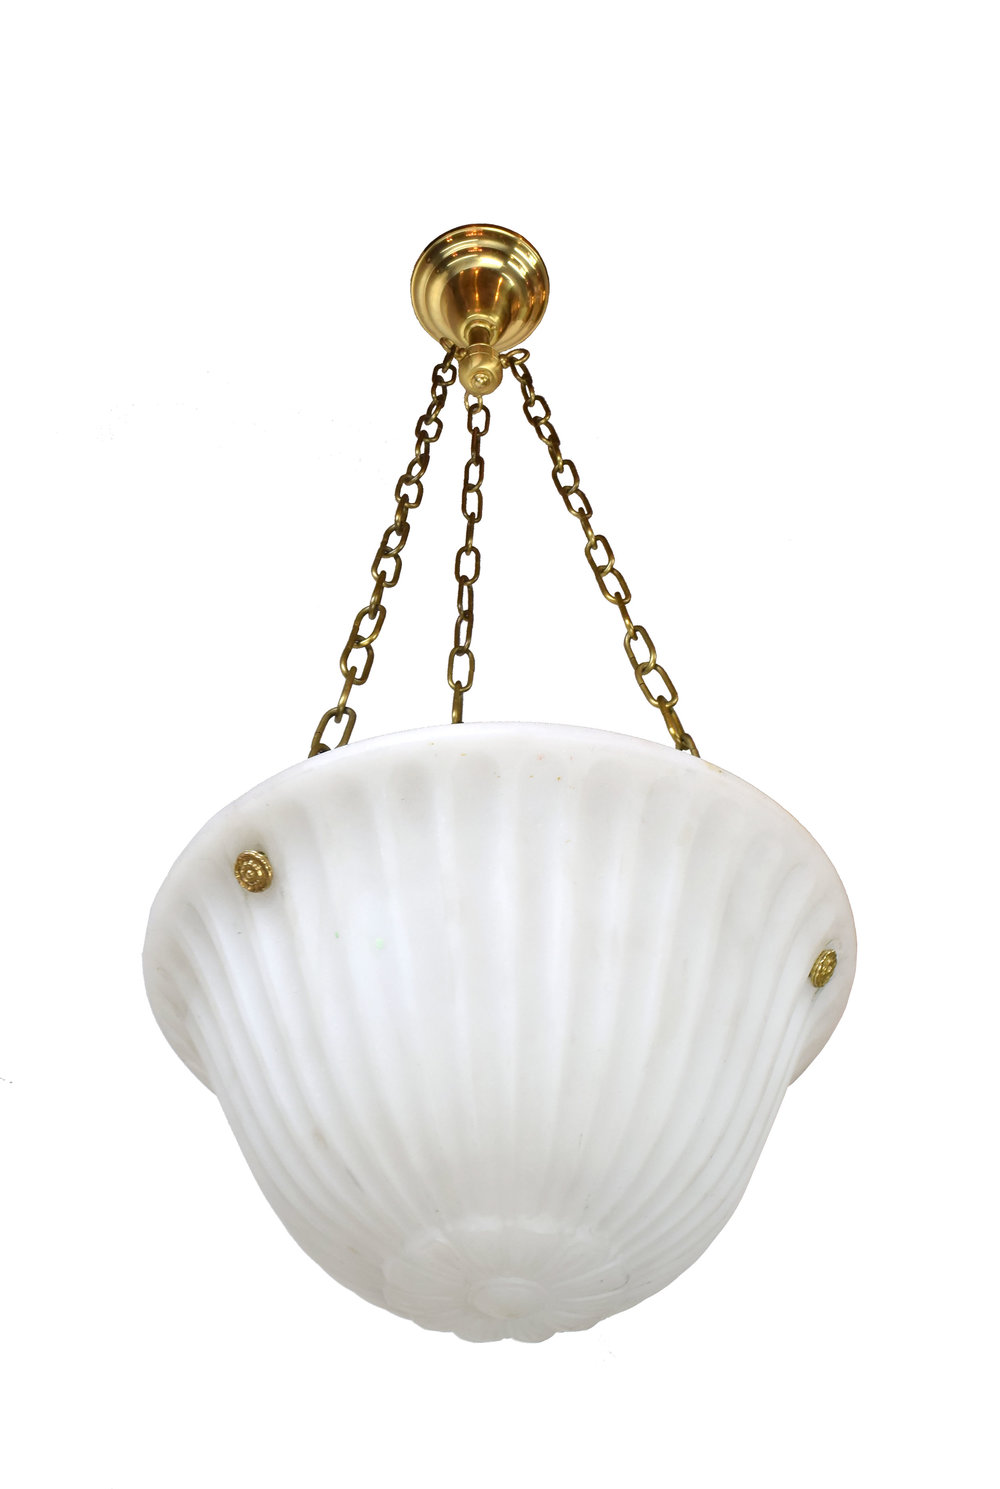 47149-cast-glass-fluted-pendant-lower-angle.jpg